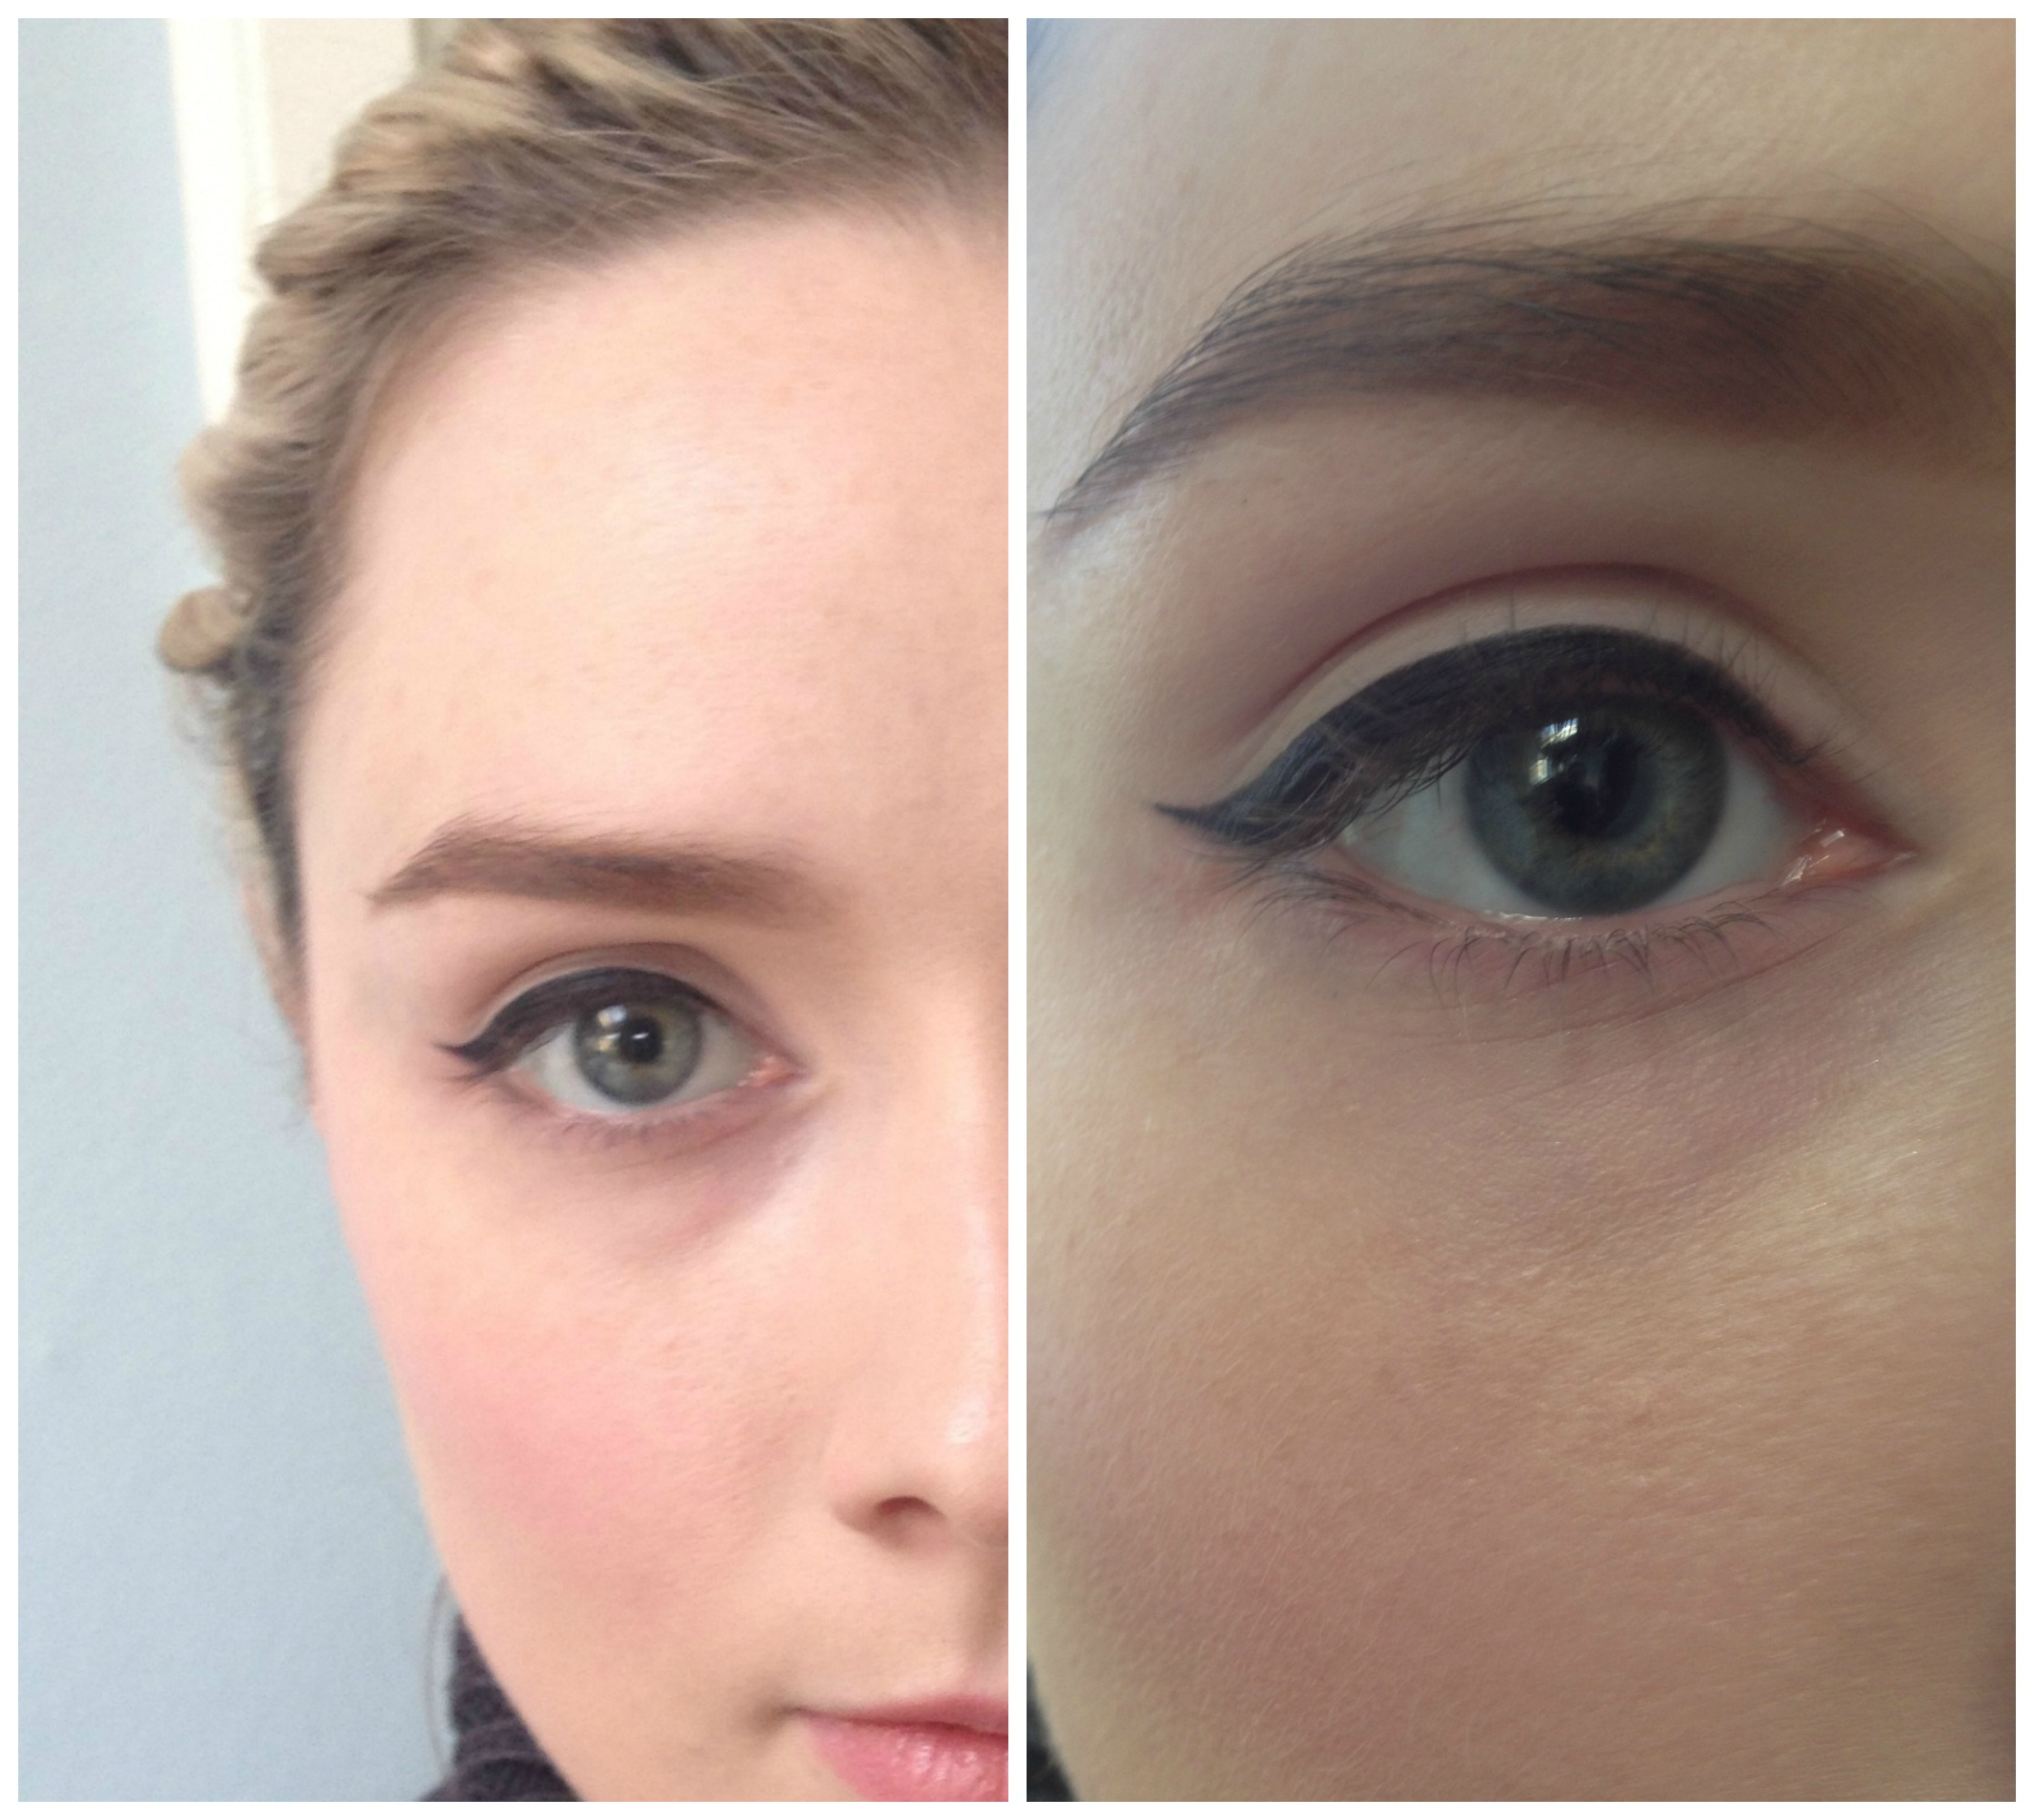 Surgical Makeup: How To Adjust Your Eye Shape to Suit Your Mood